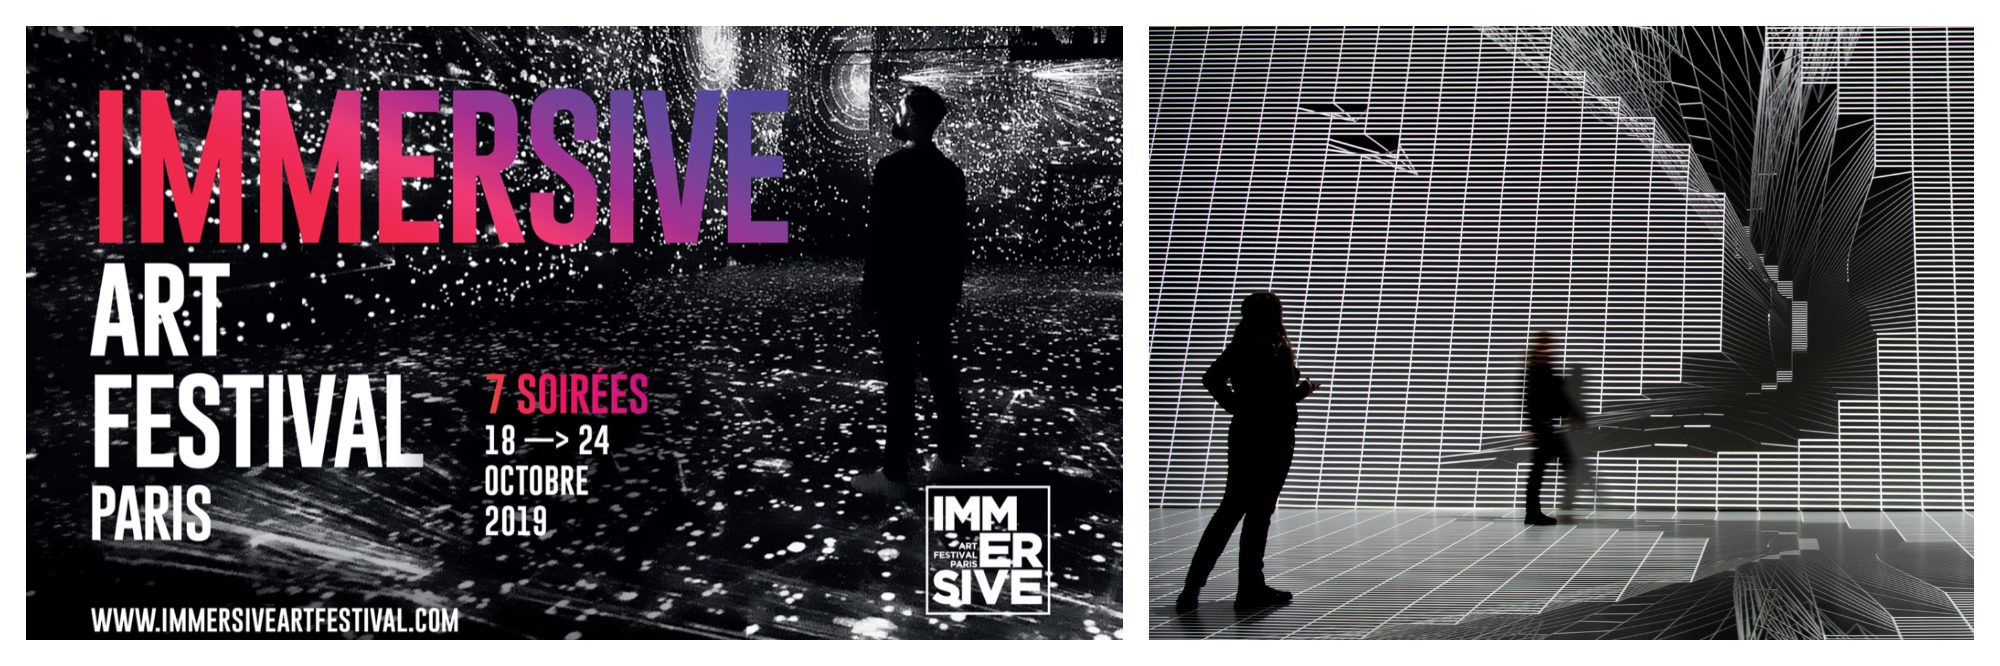 A poster for the Immersive Art Festival at the Atelier Lumières in Paris this October (left). An immersive light and sound show (right).